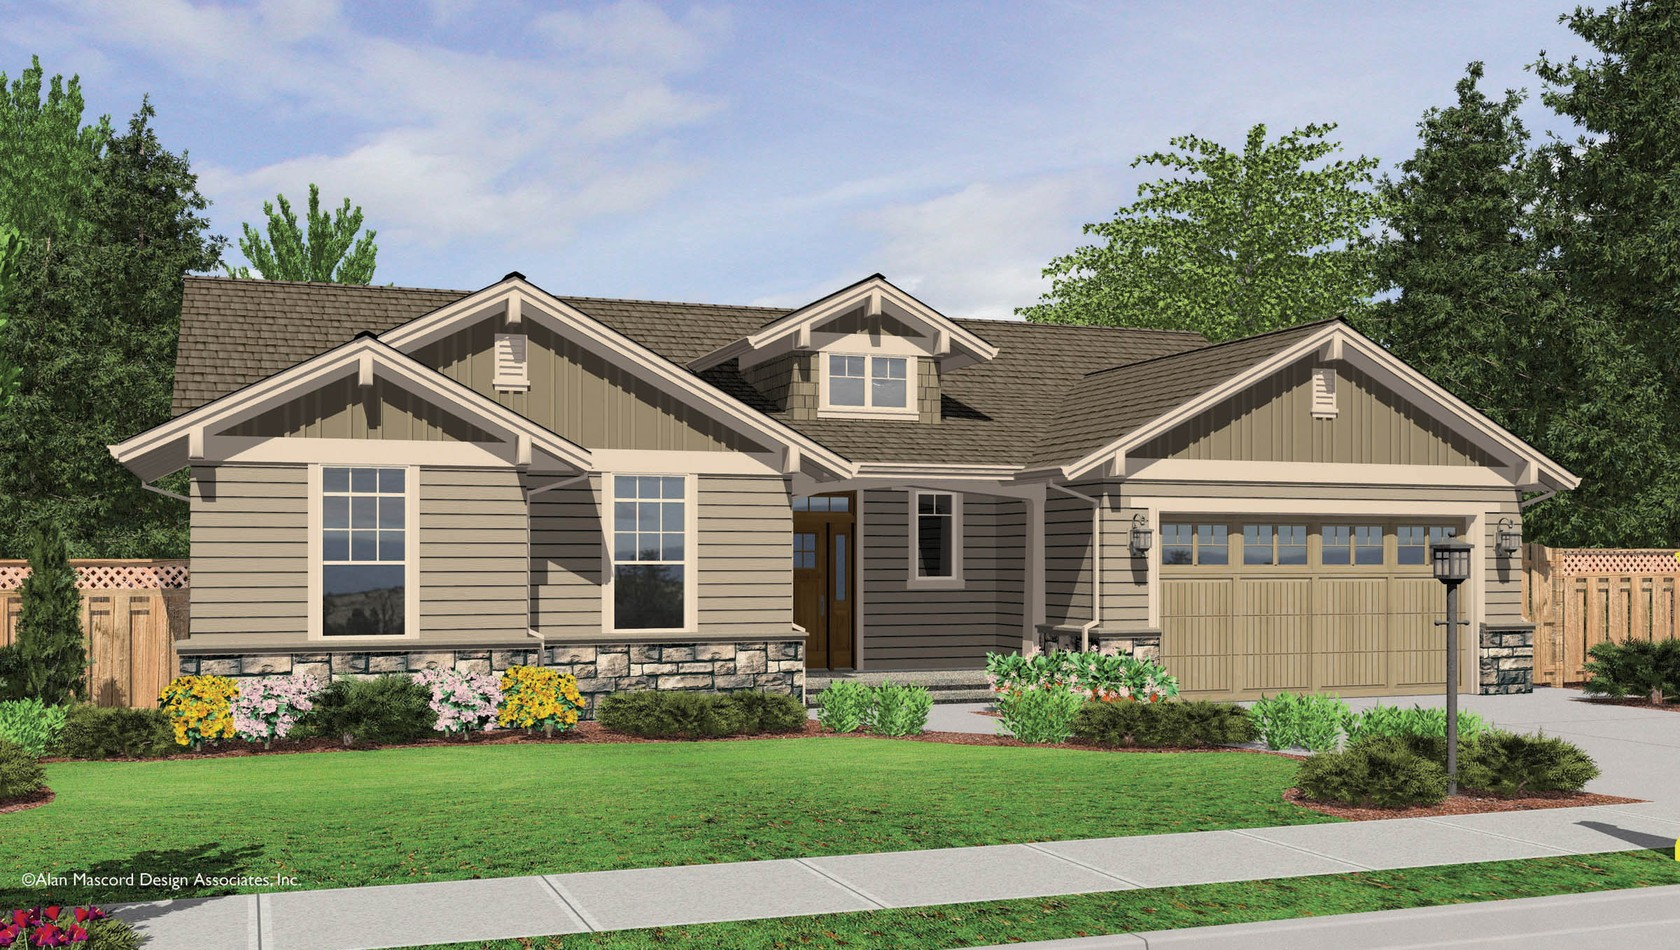 Main image for house plan B1149C: The Avondale